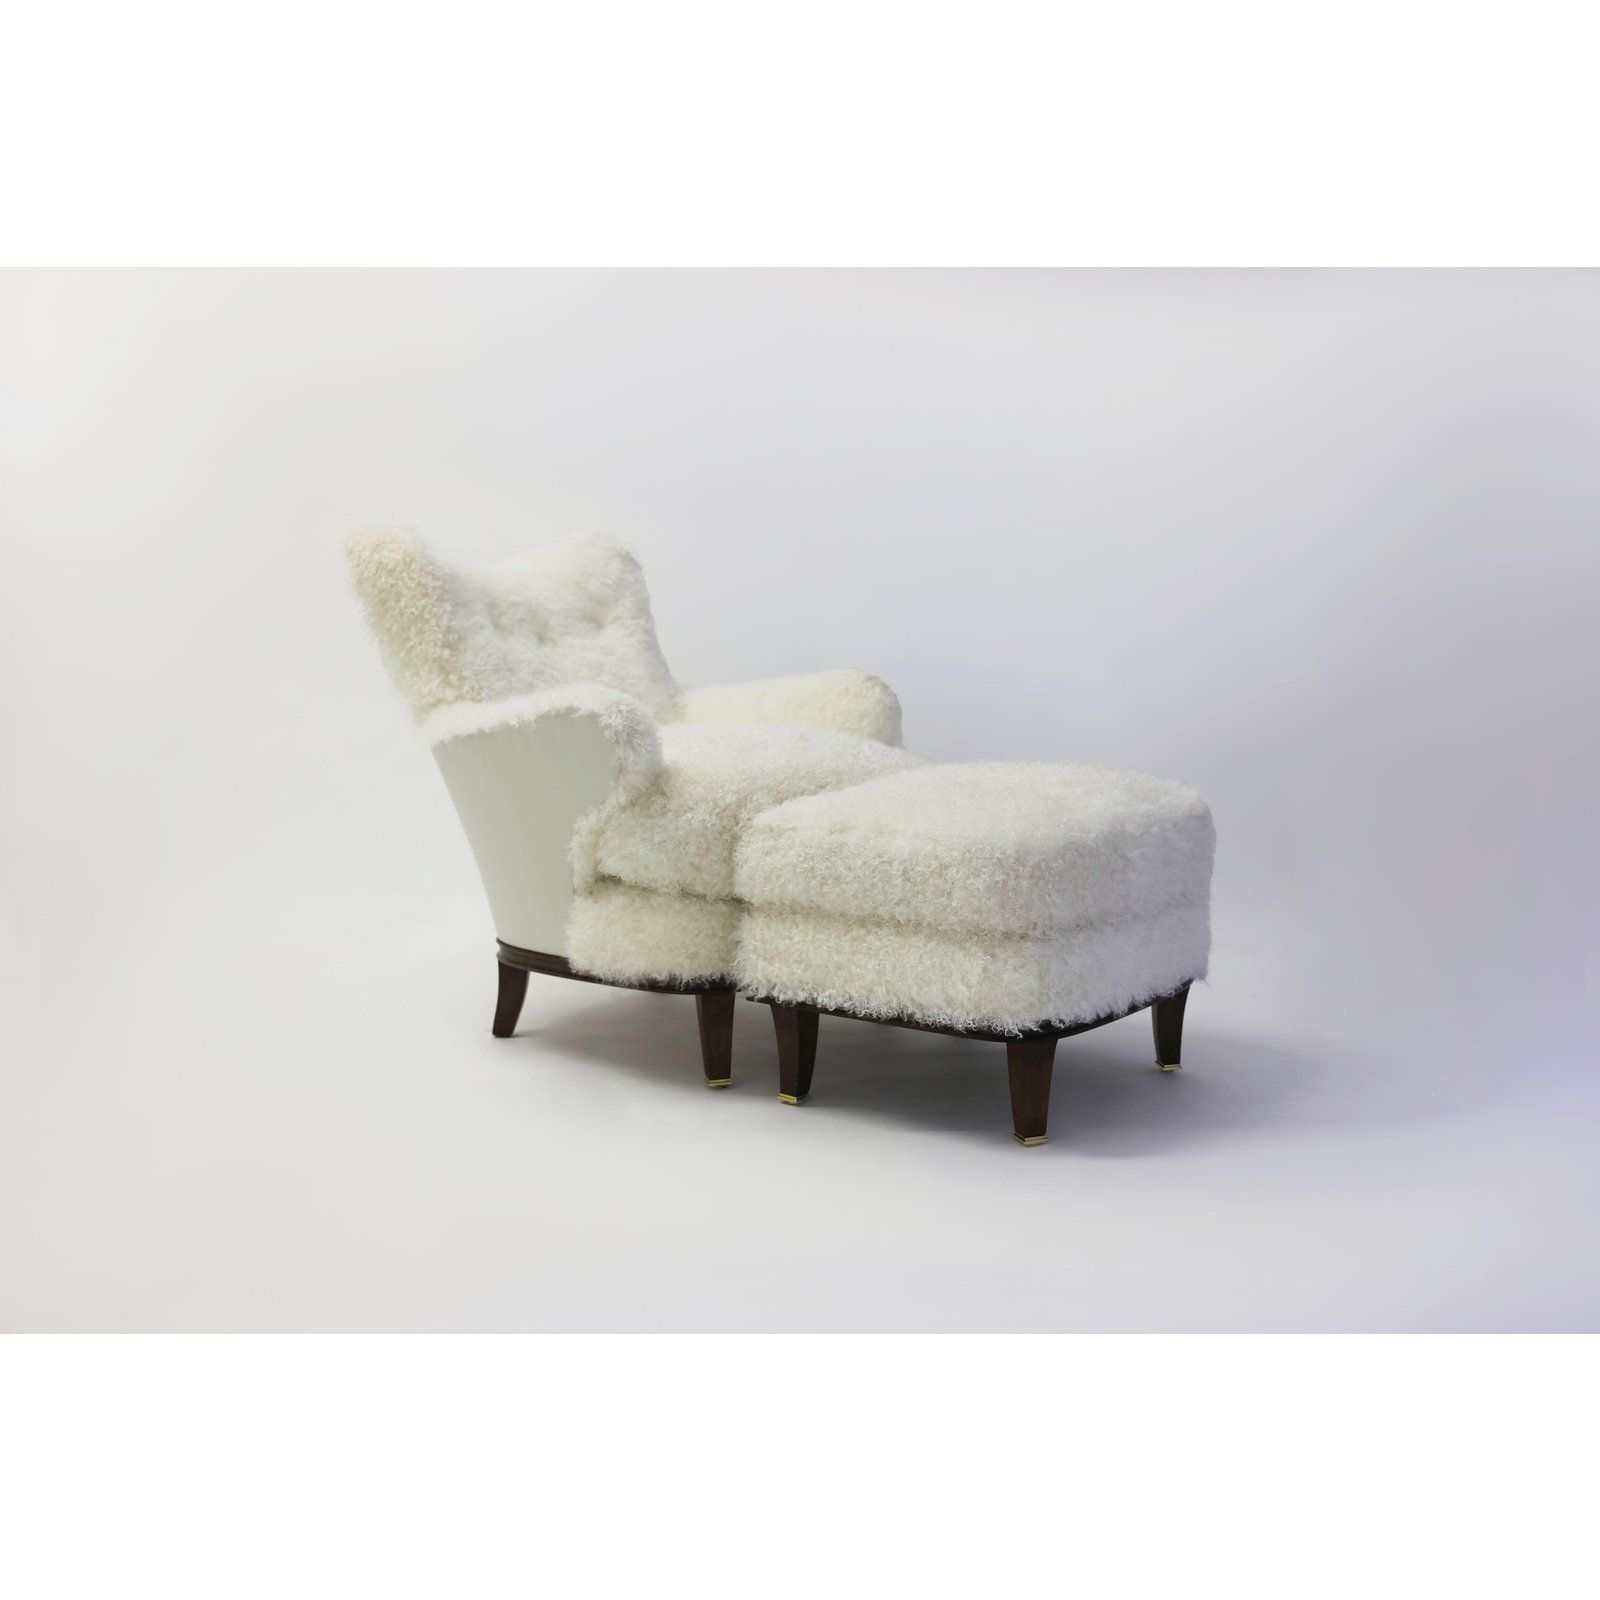 animal skin chair covers comfy bedroom shearling covered shaped back with wood base and legs metal cap feet for sale image 7 of 11